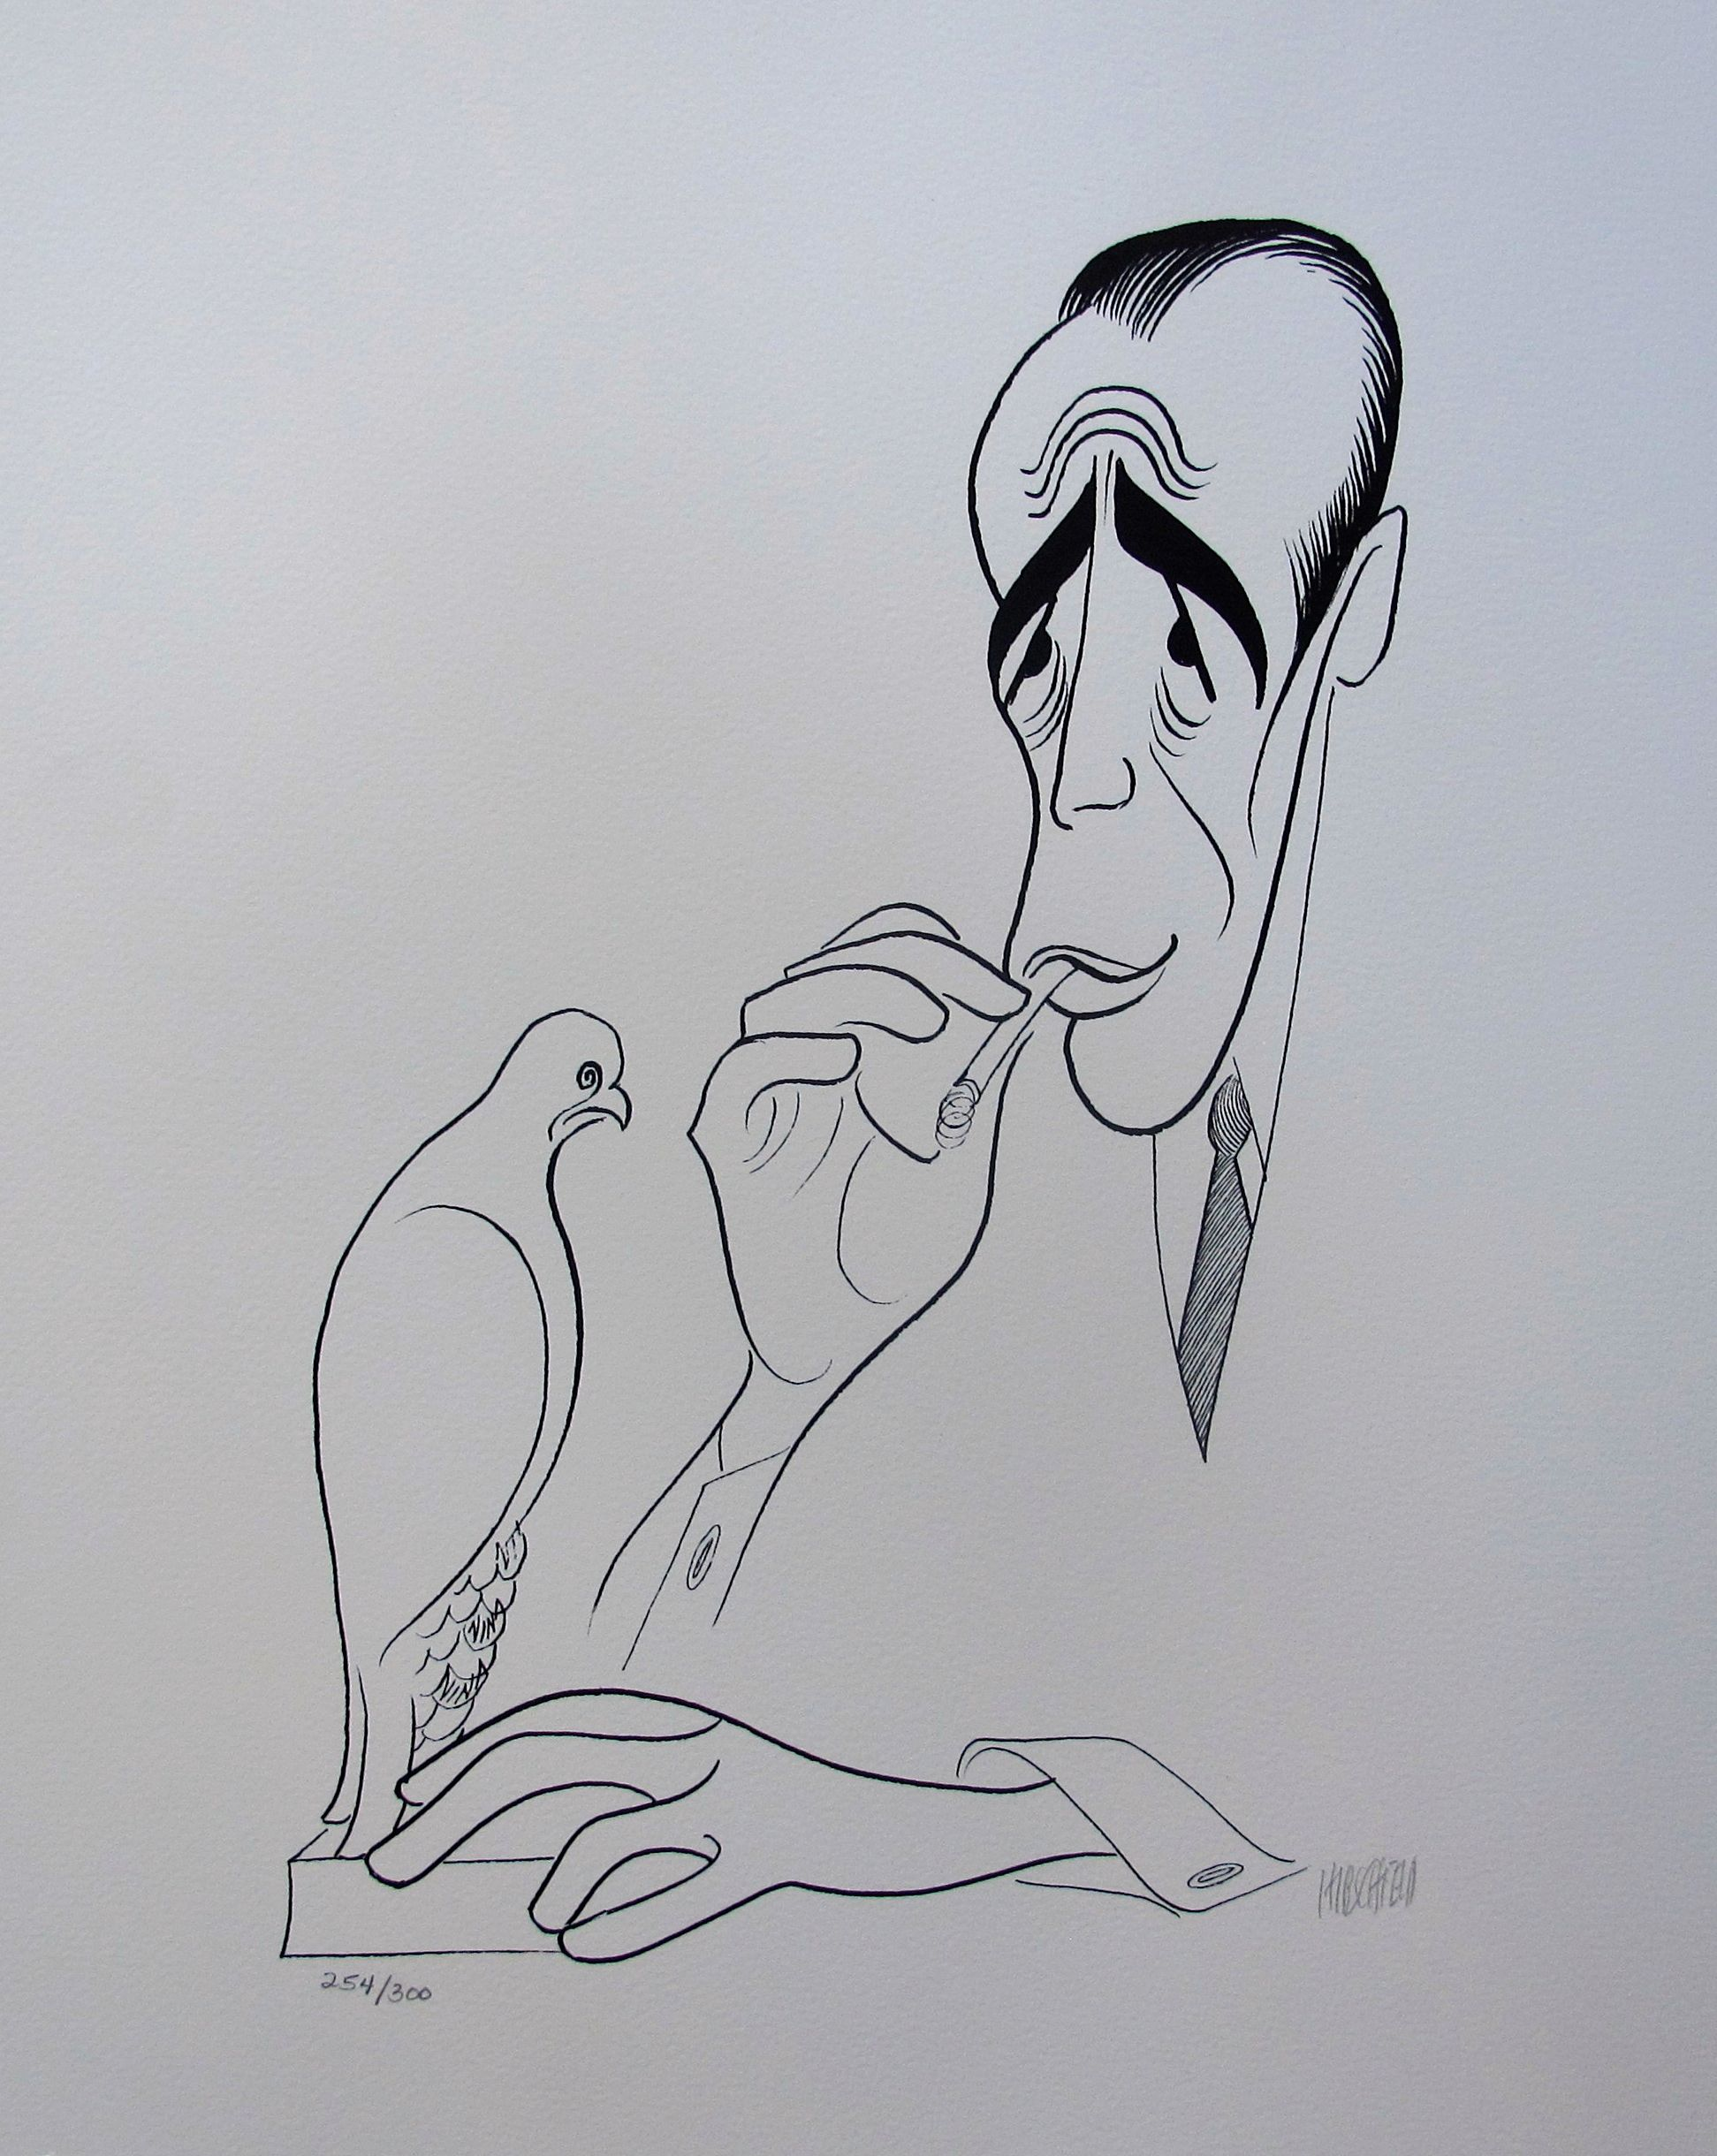 AL HIRSCHFELD THE MALTESE FALCON Hand Signed Ltd Ed. Lithograph HUMPHREY BOGART